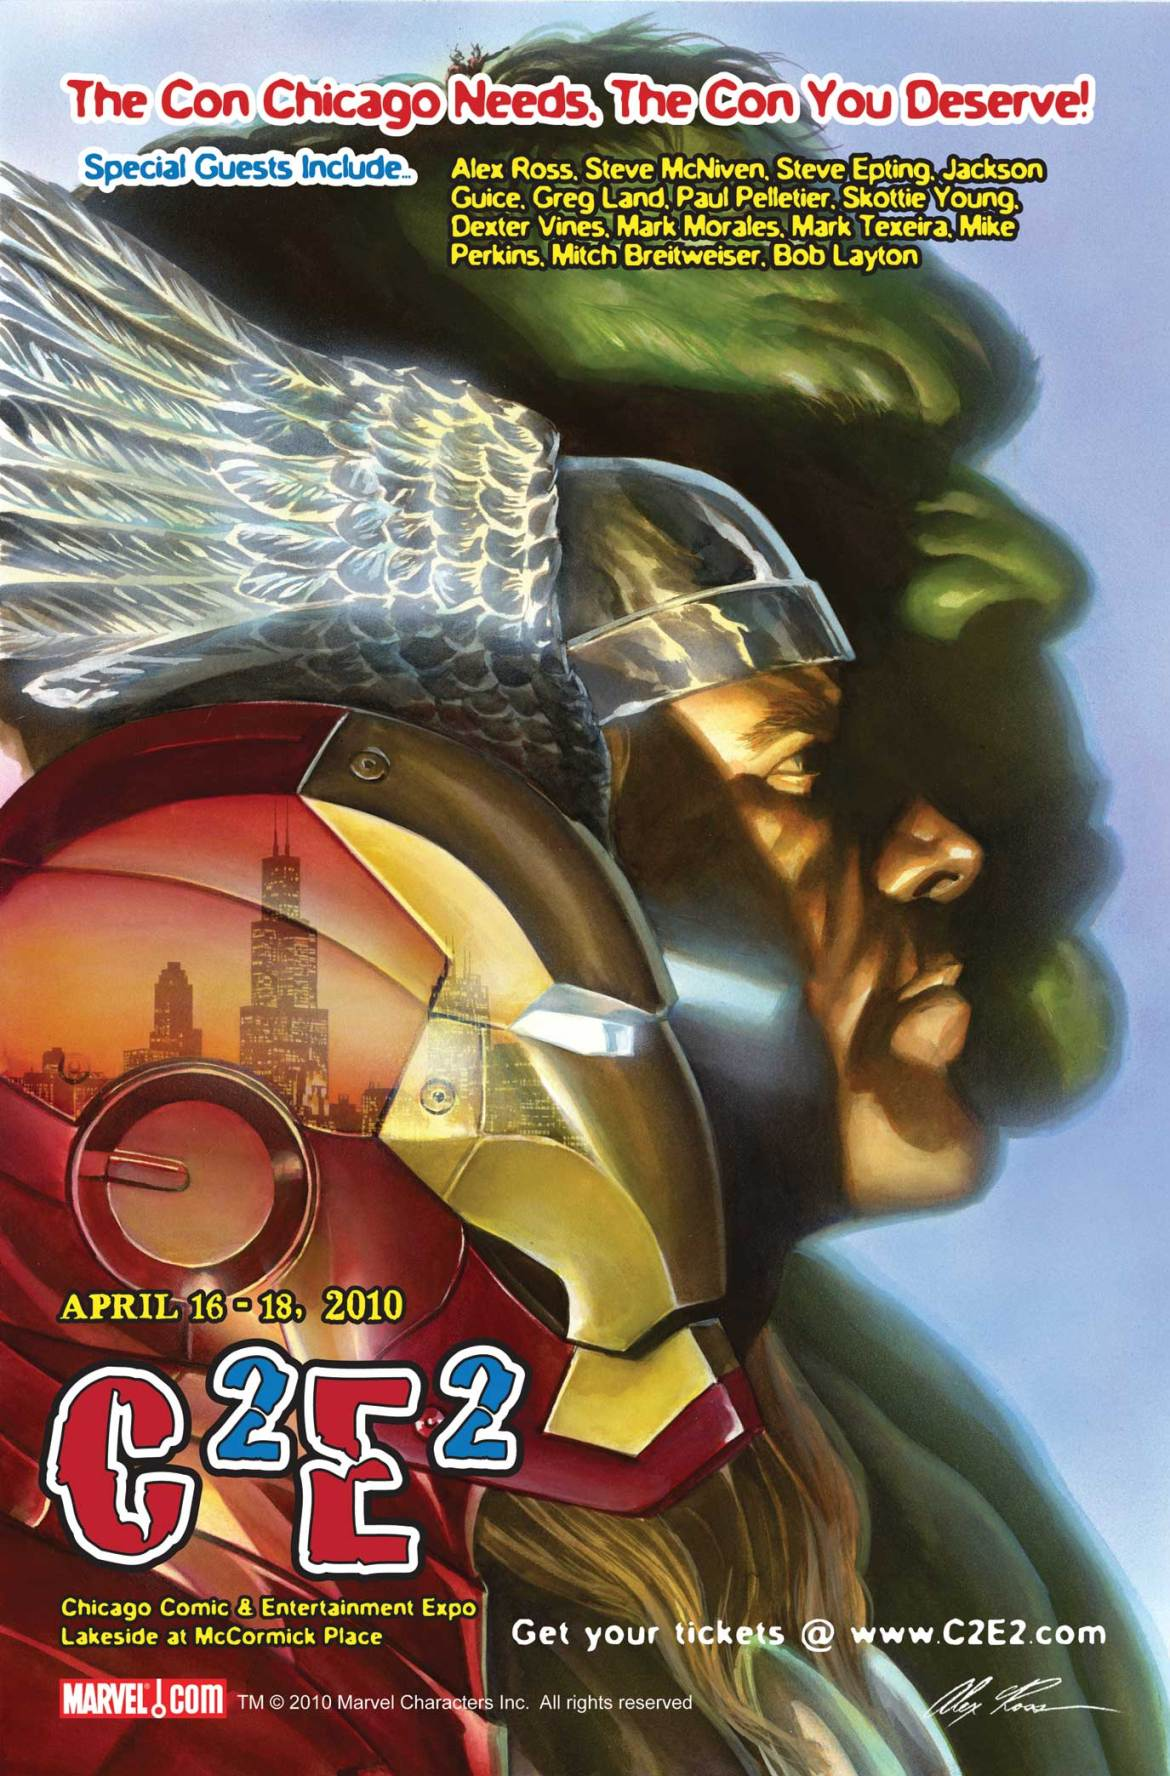 MARVEL_C2E2 Marvel Contests And Giveaways At C2E2